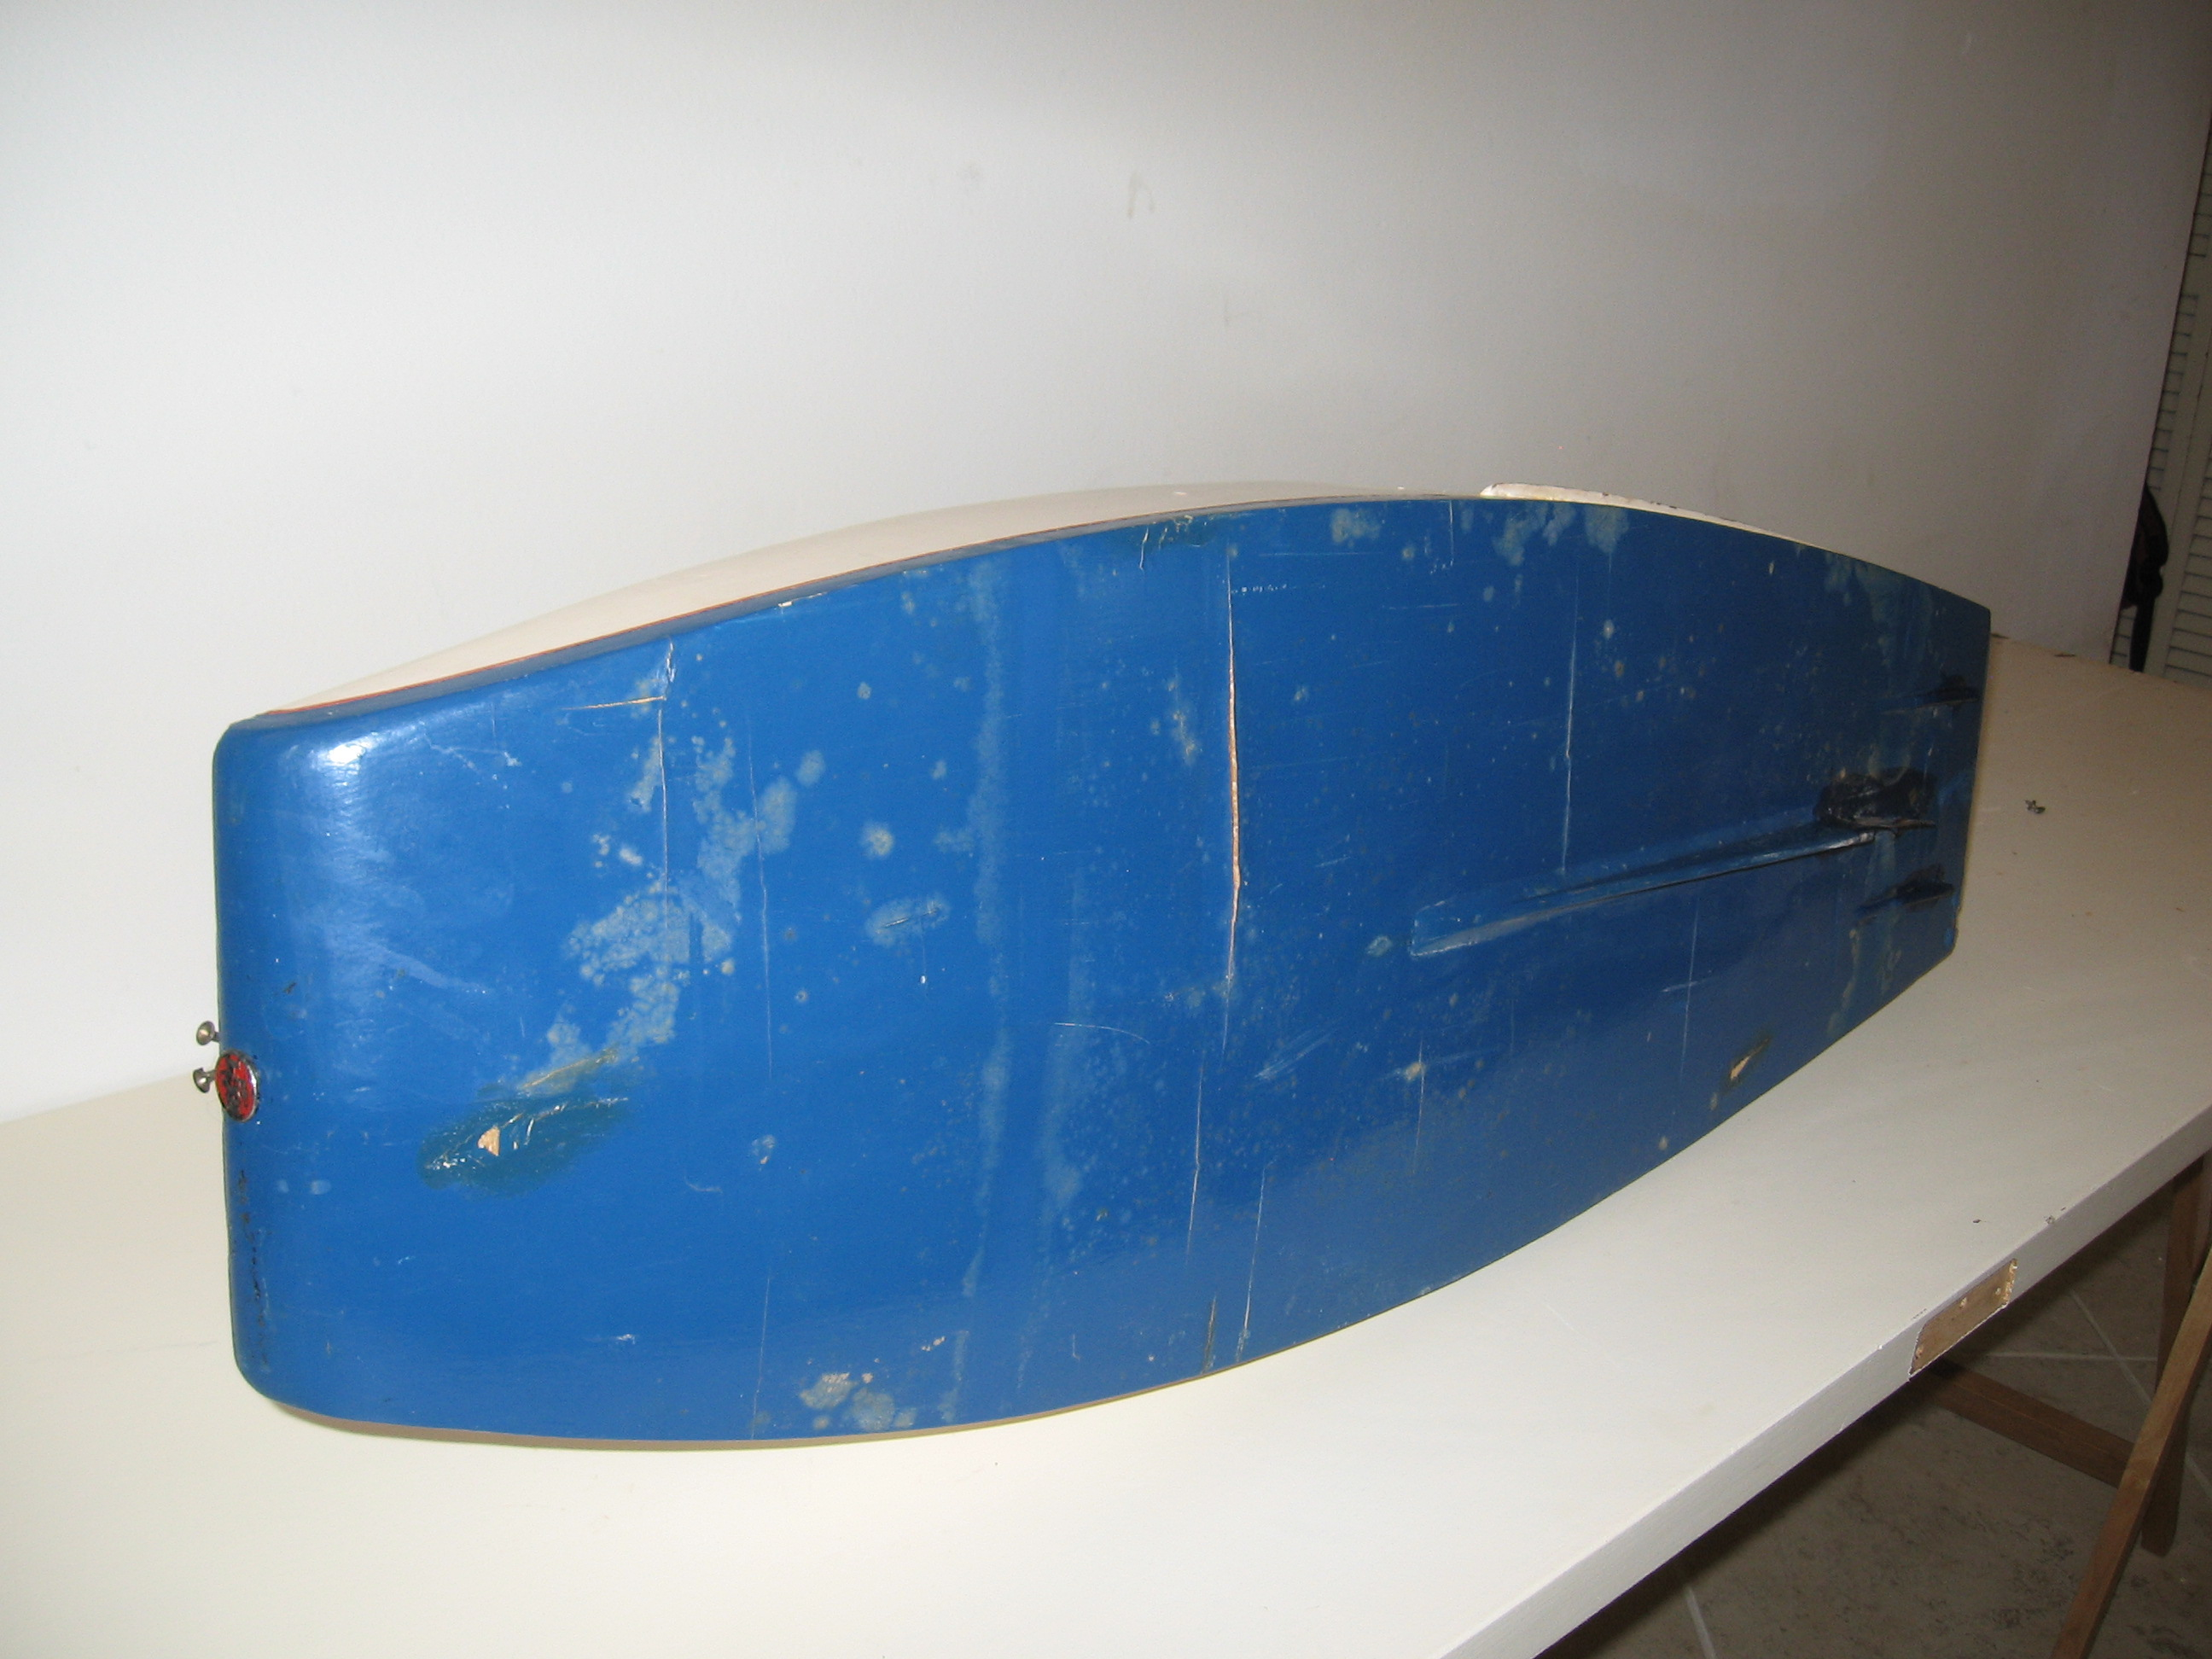 Click image for larger version  Name:RC boats 011.JPG Views:41 Size:923.1 KB ID:1977808